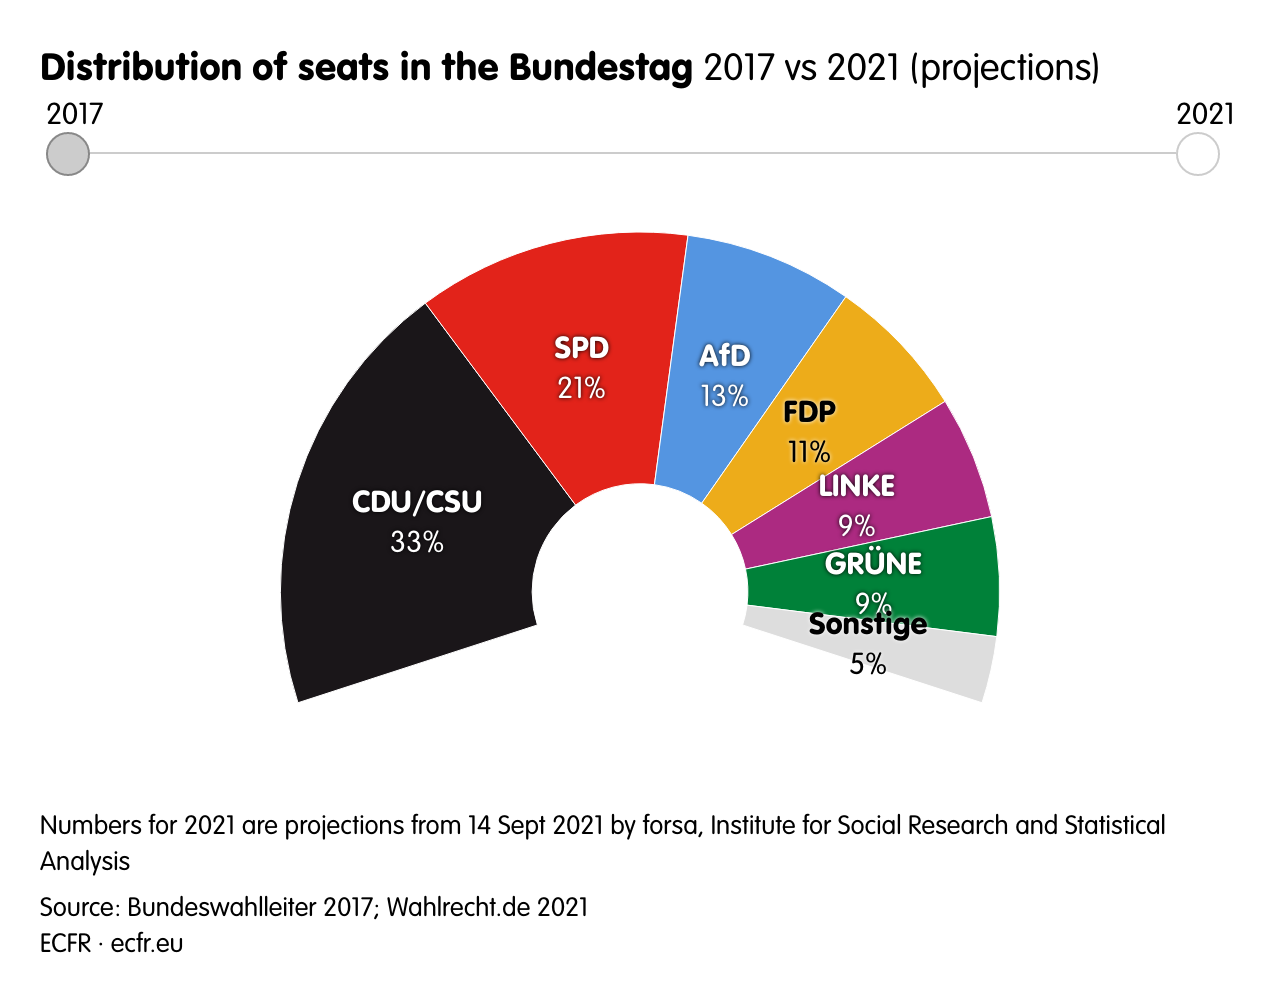 Distribution of seats in the Bundestag